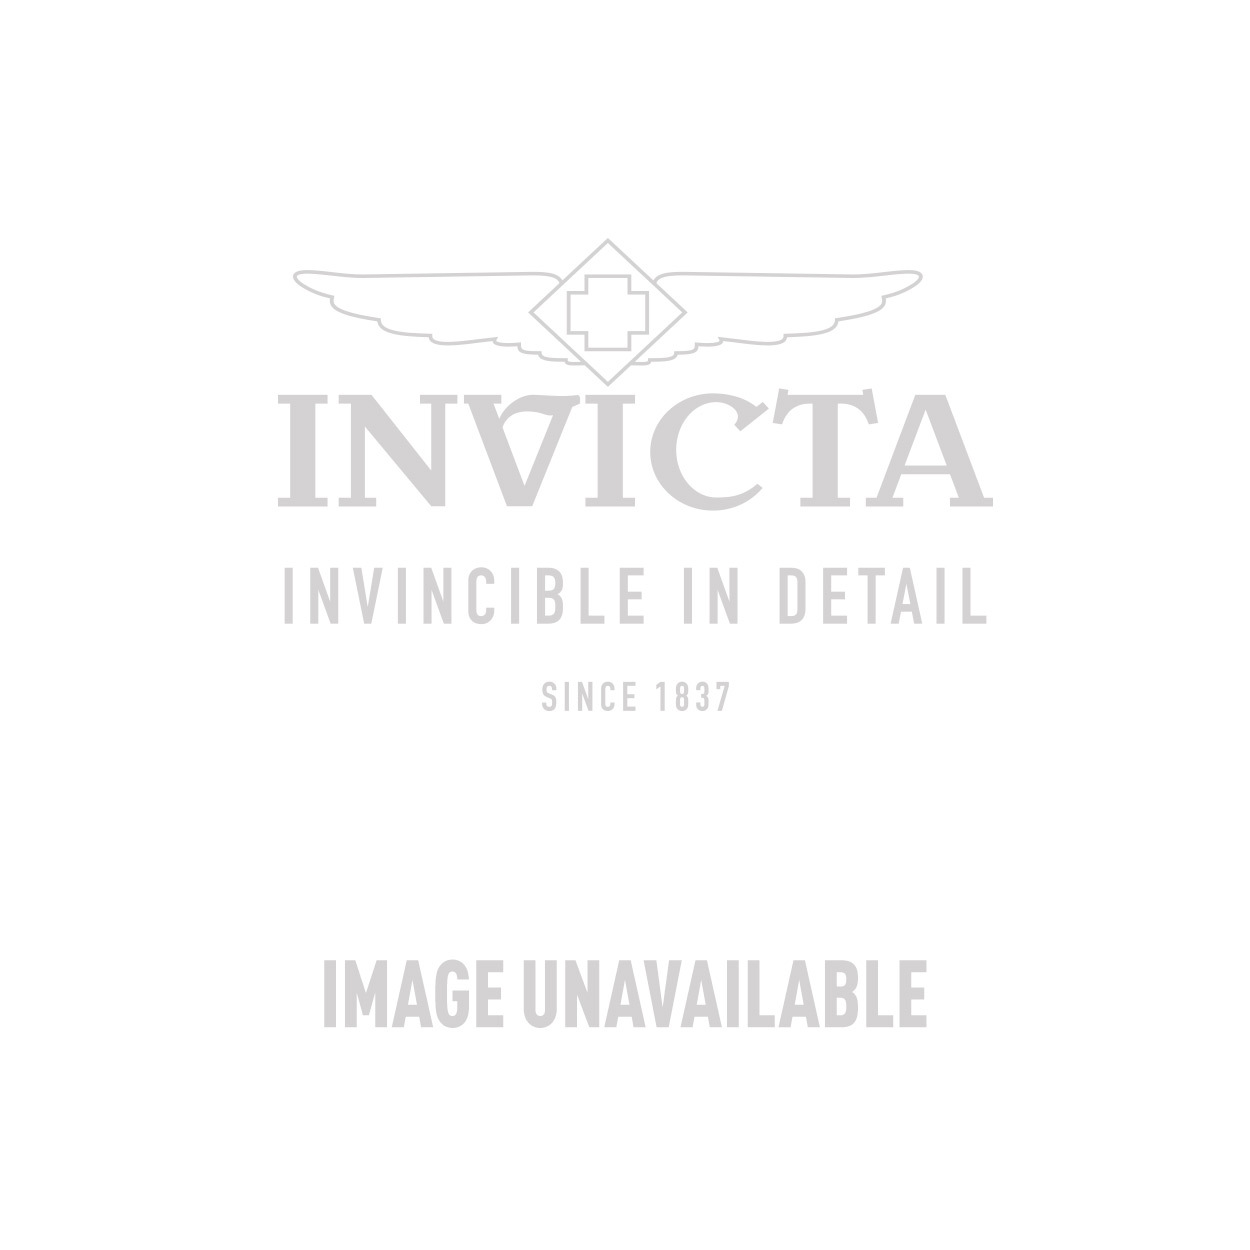 Invicta Sea Base Swiss Made Quartz Watch - Gold case with Gold, Black tone Stainless Steel, Polyurethane band - Model 17999